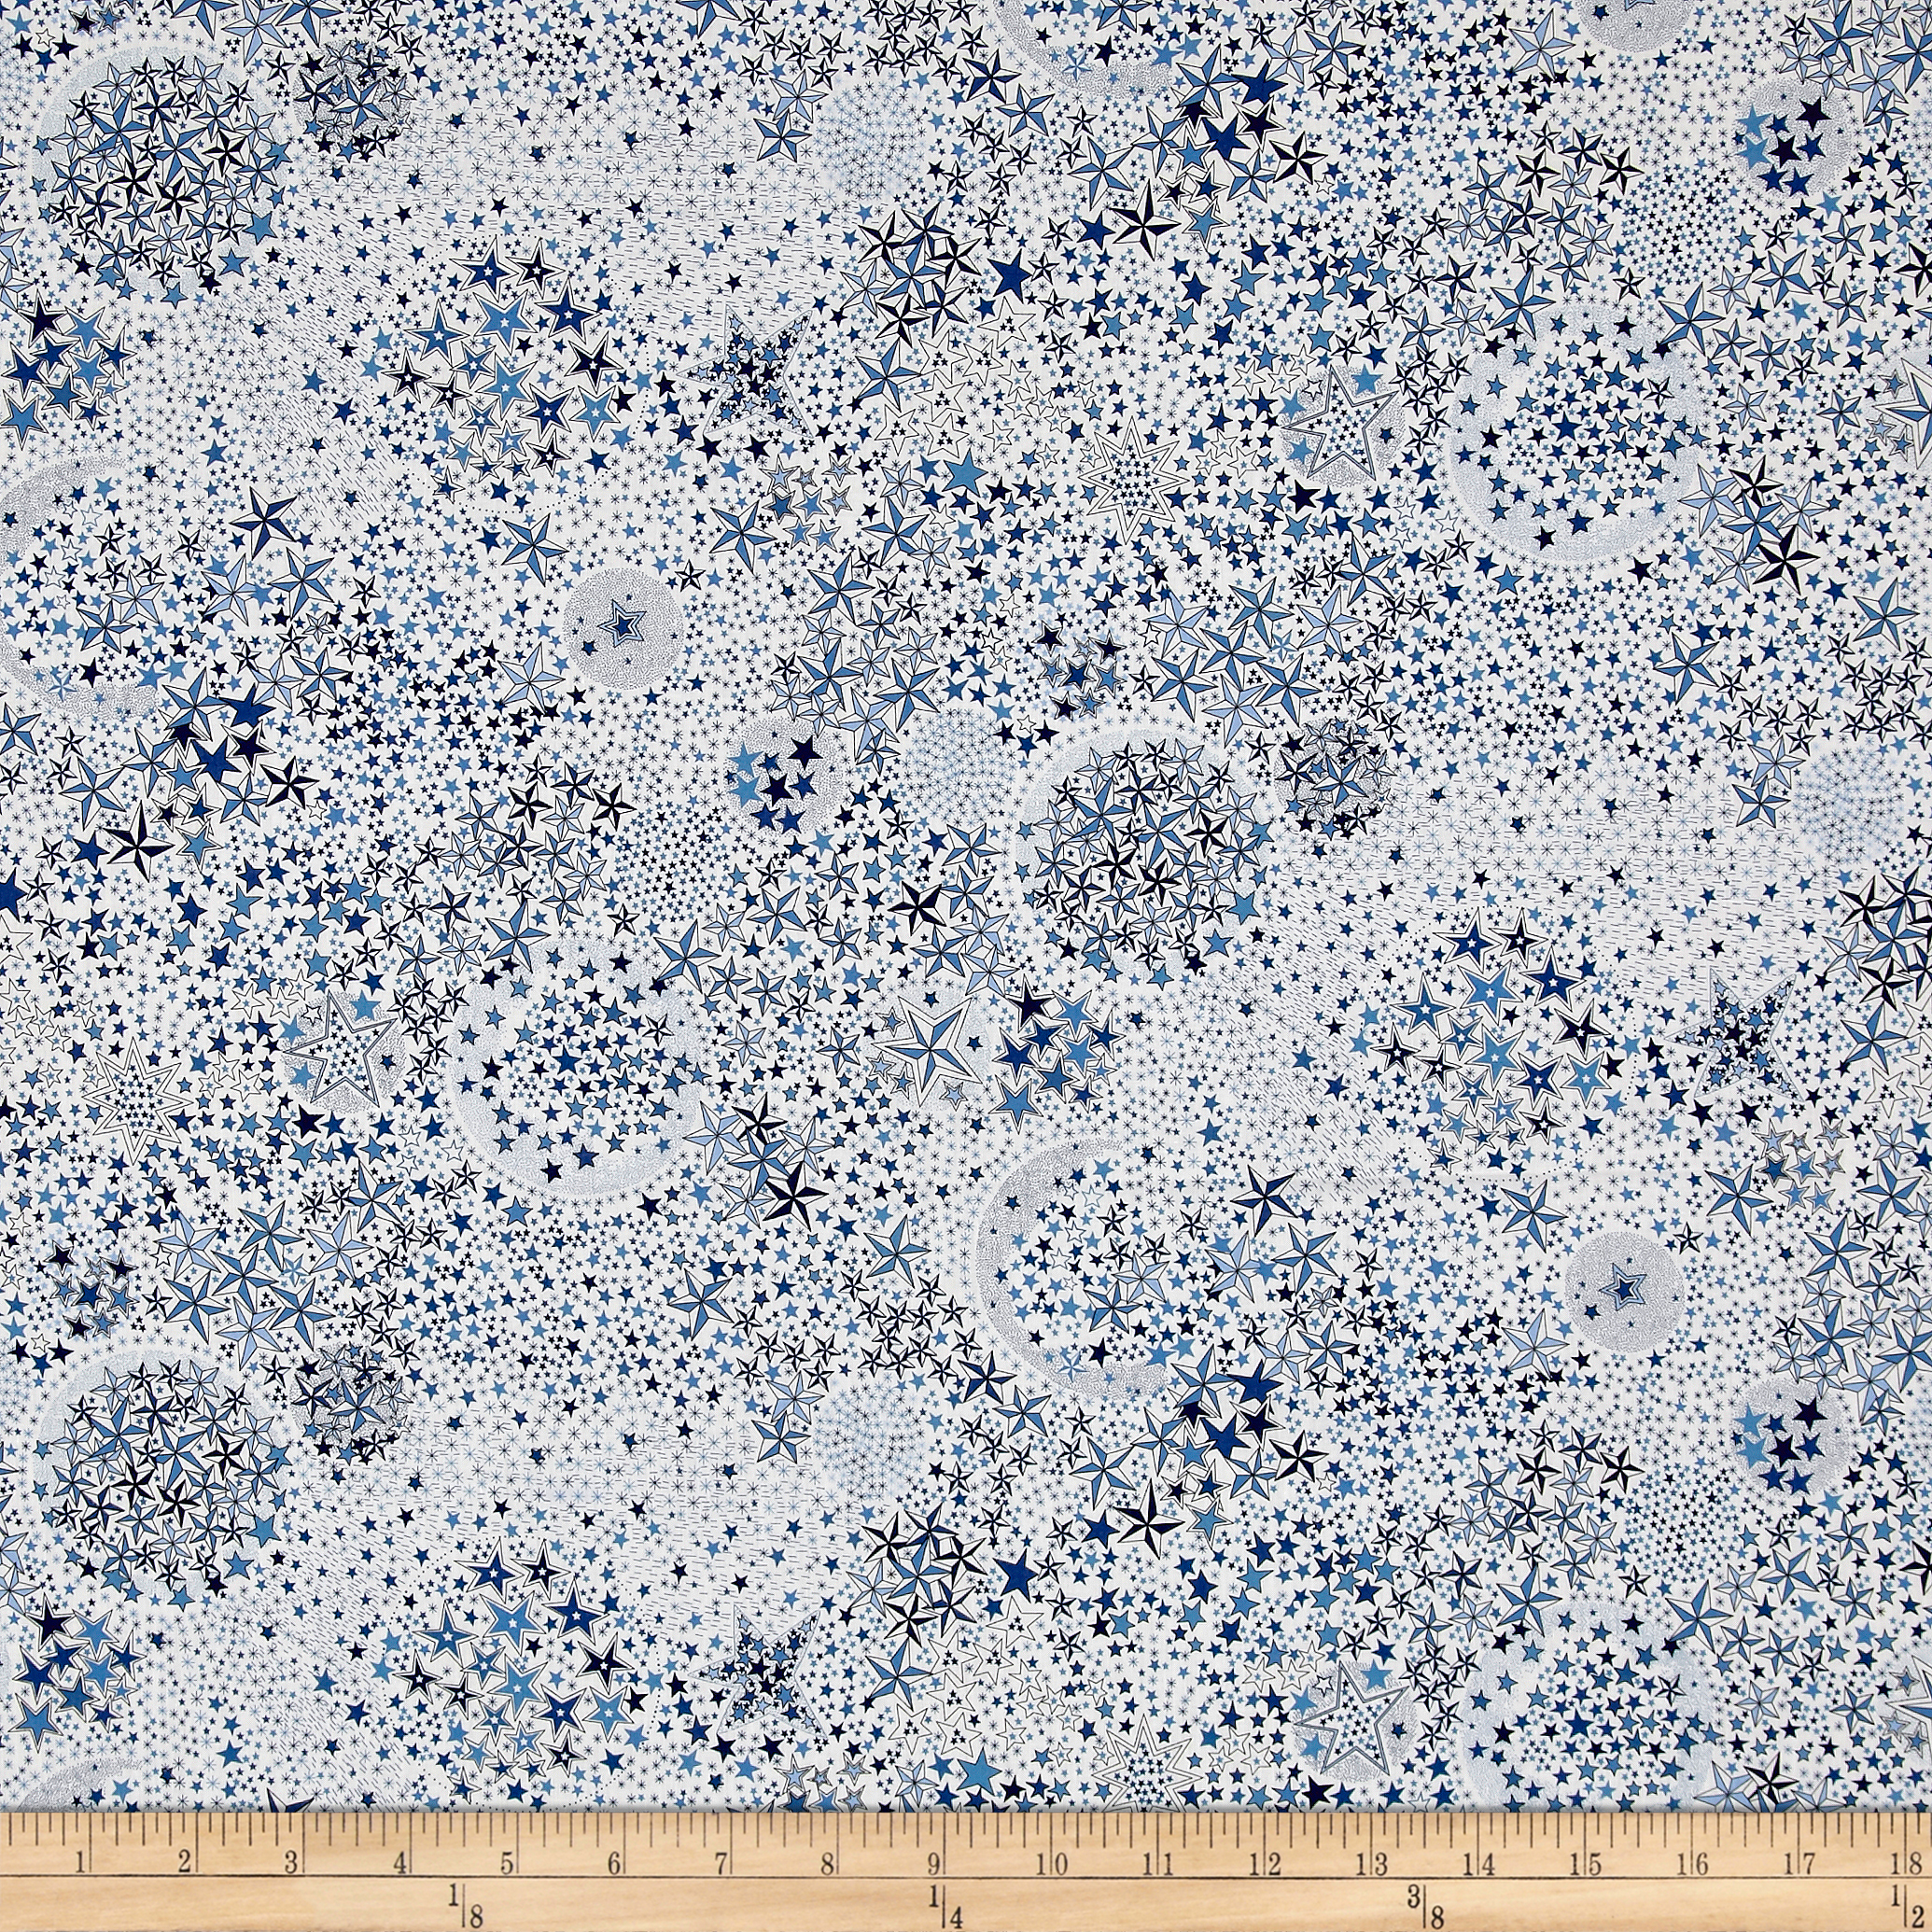 Liberty of London Contemporary Classic Tana Lawn Adelajda White/Blue Fabric by Liberty Of London in USA